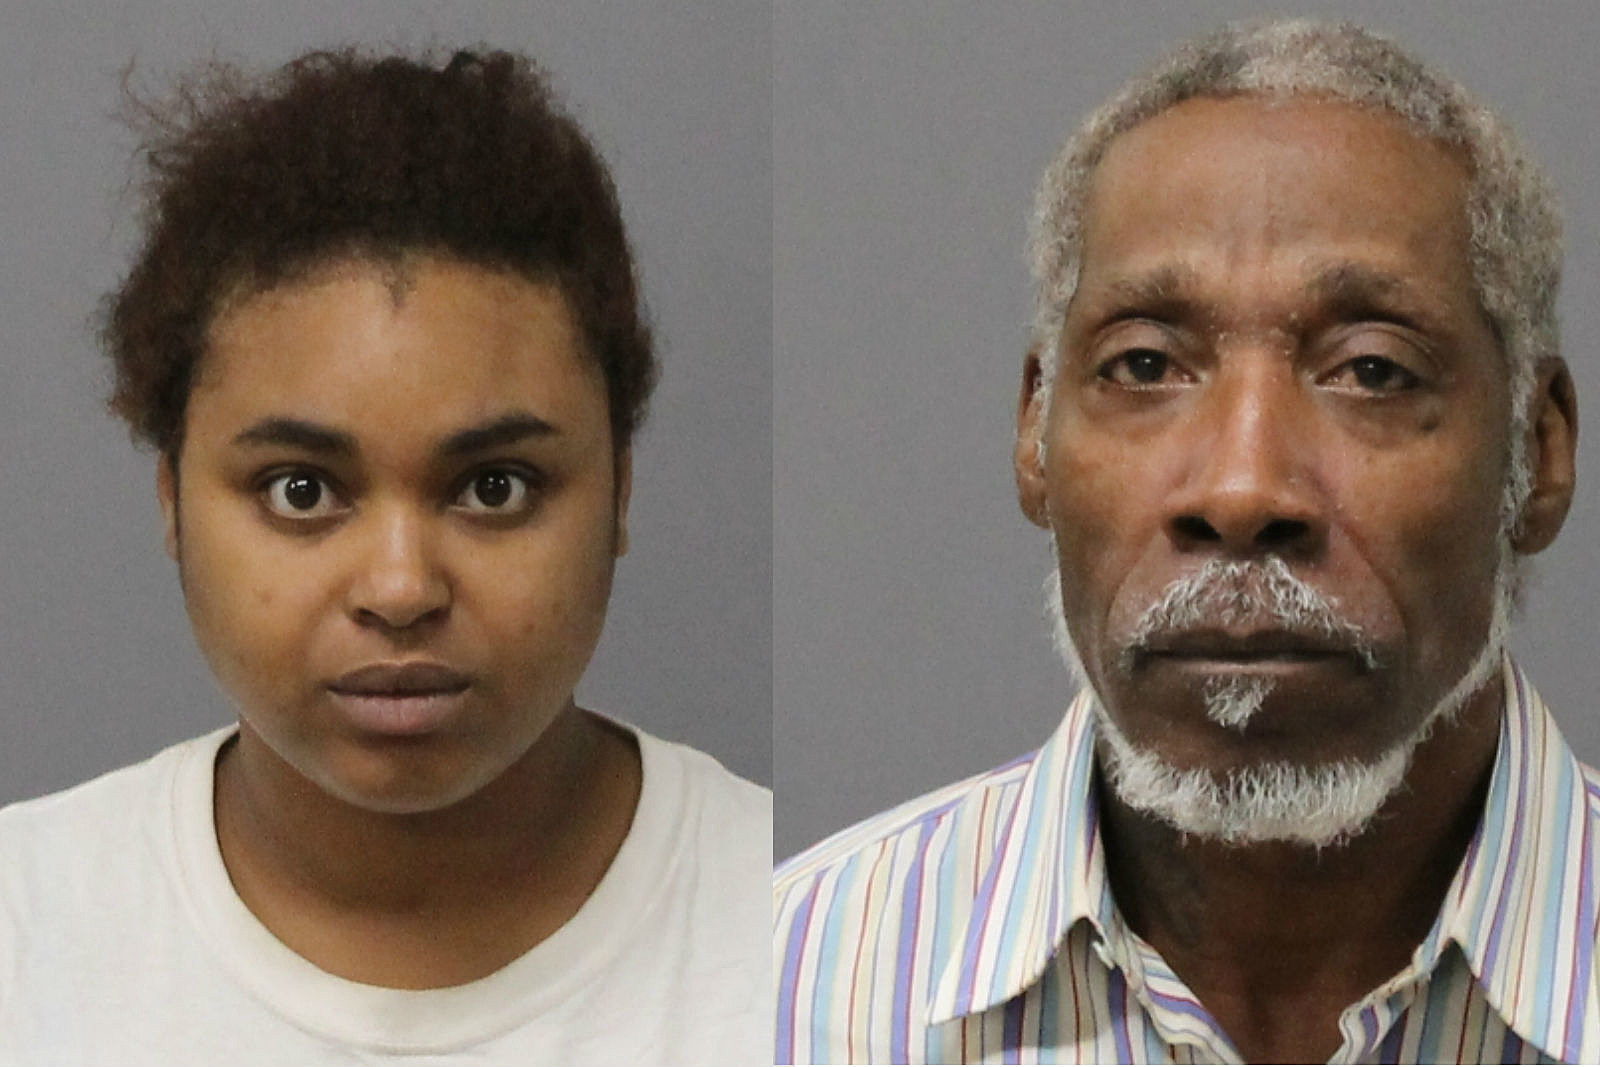 Couple charged with raping child in Hunterdon County